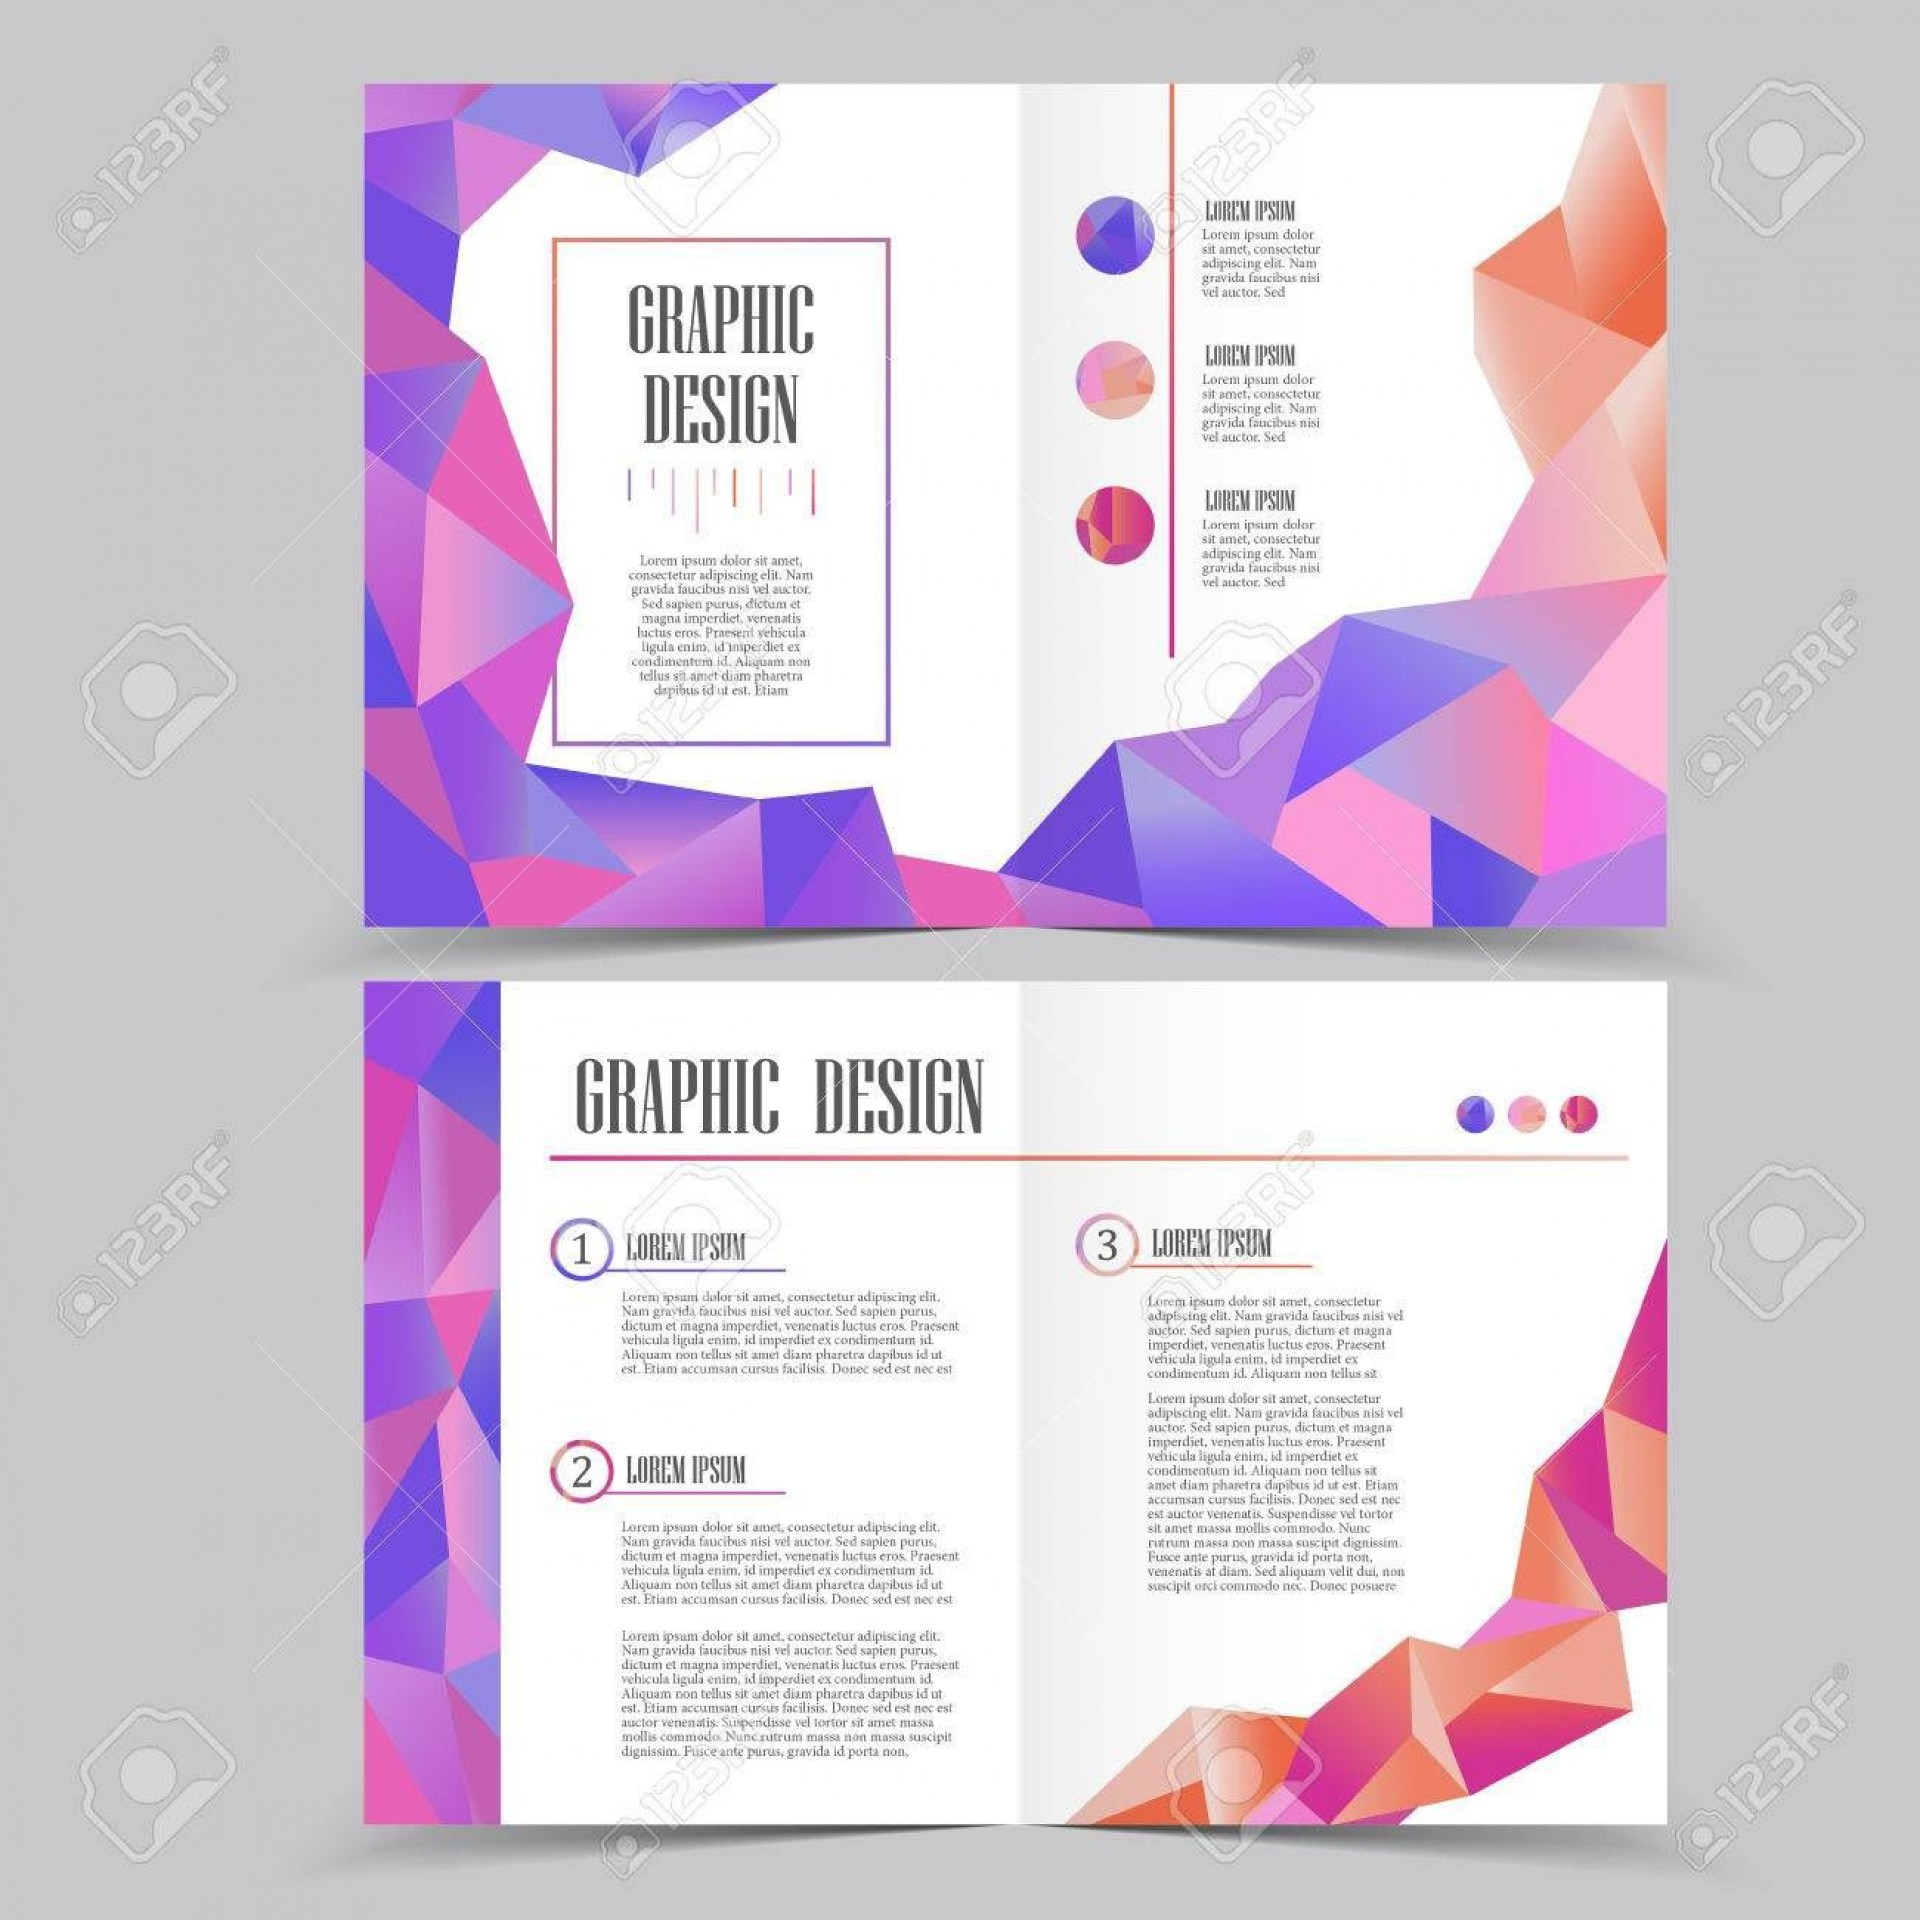 005 Magnificent Half Fold Brochure Template High Resolution  Free Microsoft Word Indesign1920